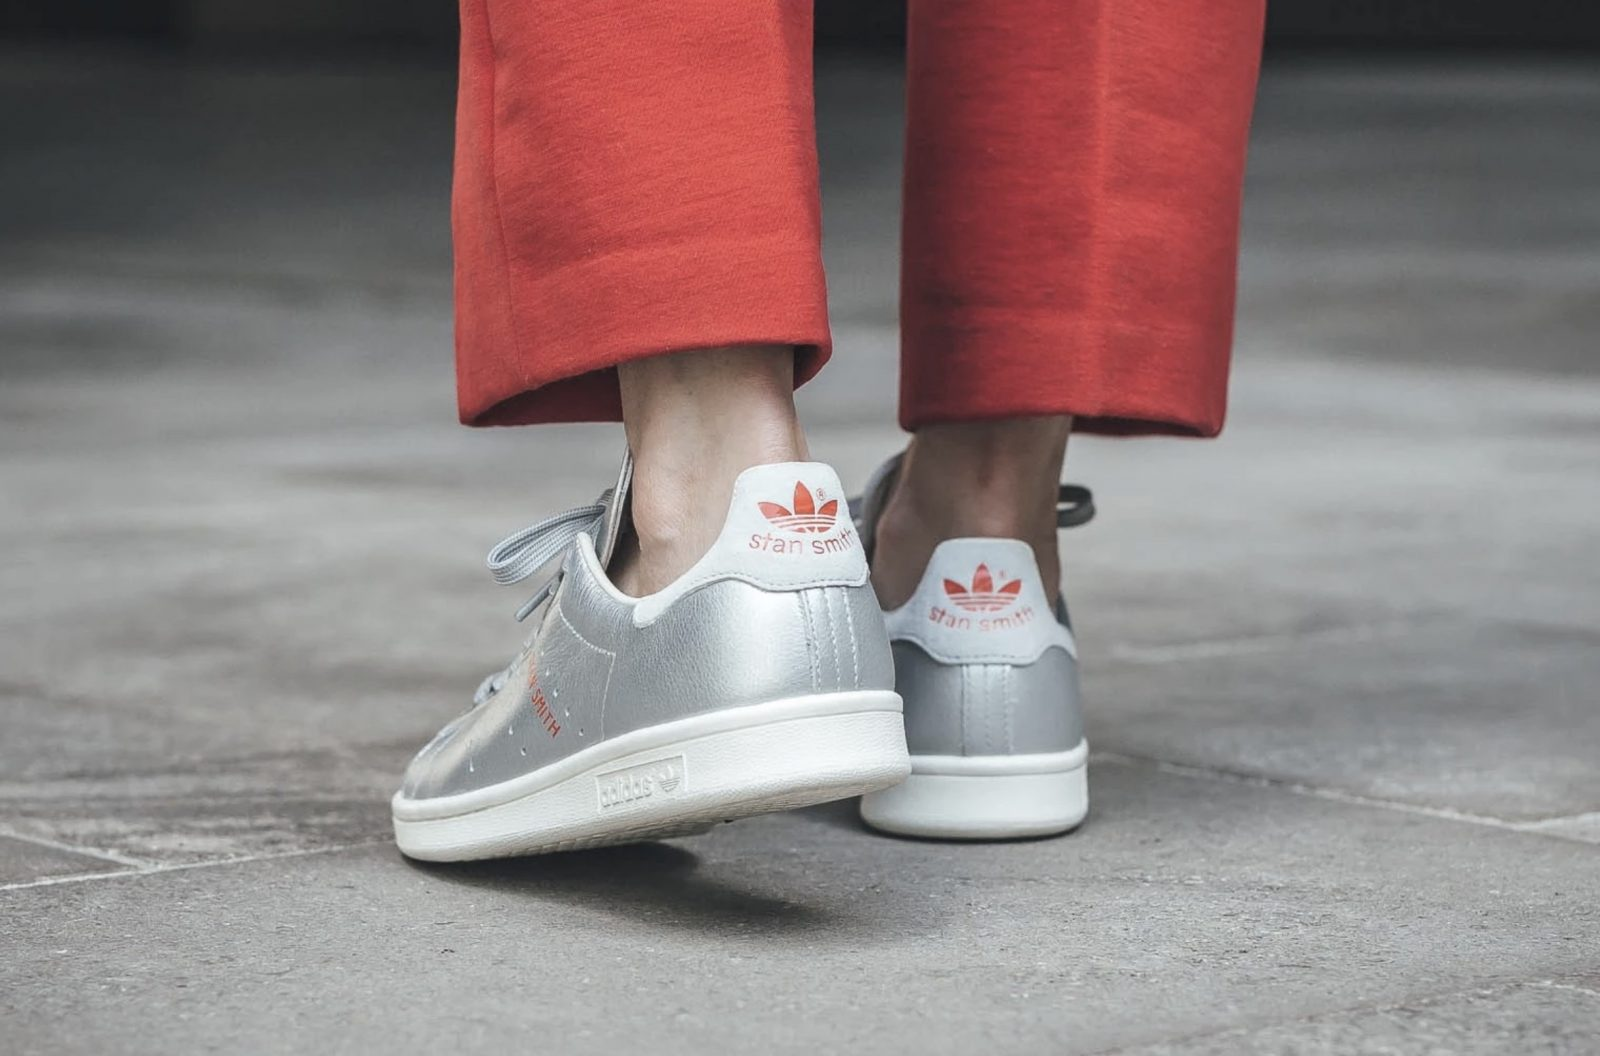 huge selection of 3cdad 04584 Switch Up Your Rotation With These Metallic Silver adidas Stan Smiths